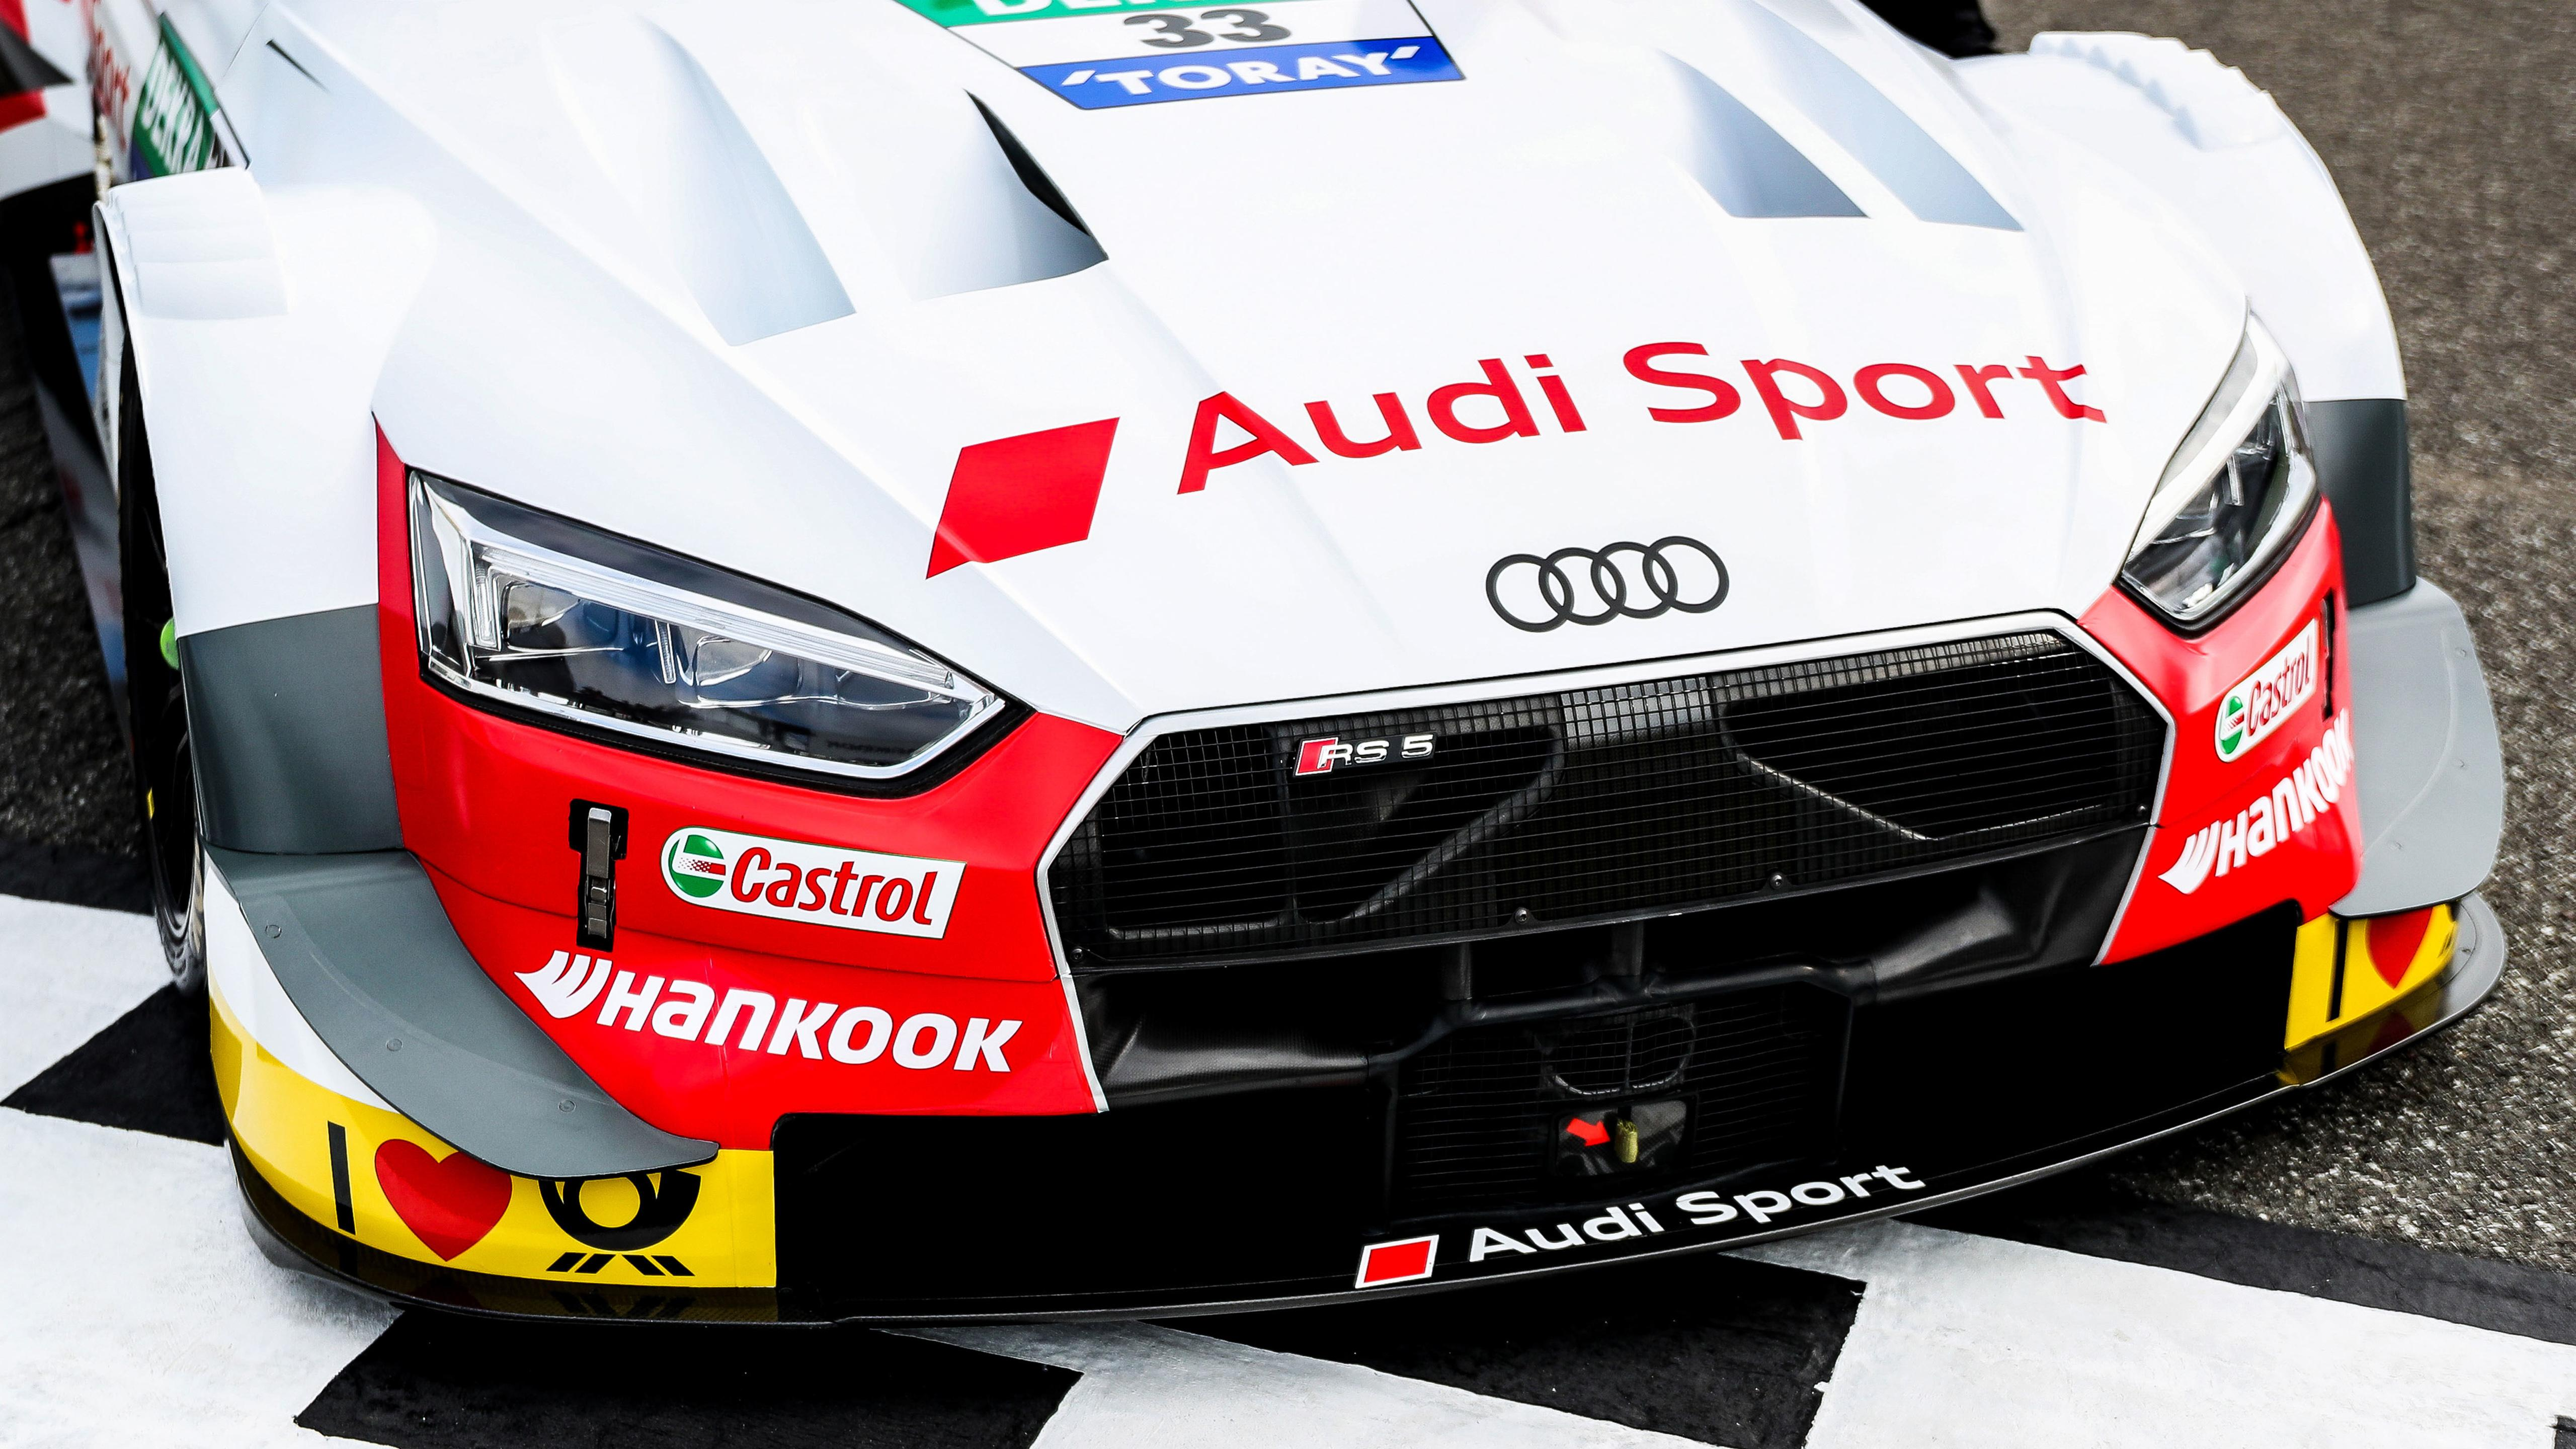 Audi Rs 5 Coupe Dtm 2019 Wallpapers Wallpaper Cave